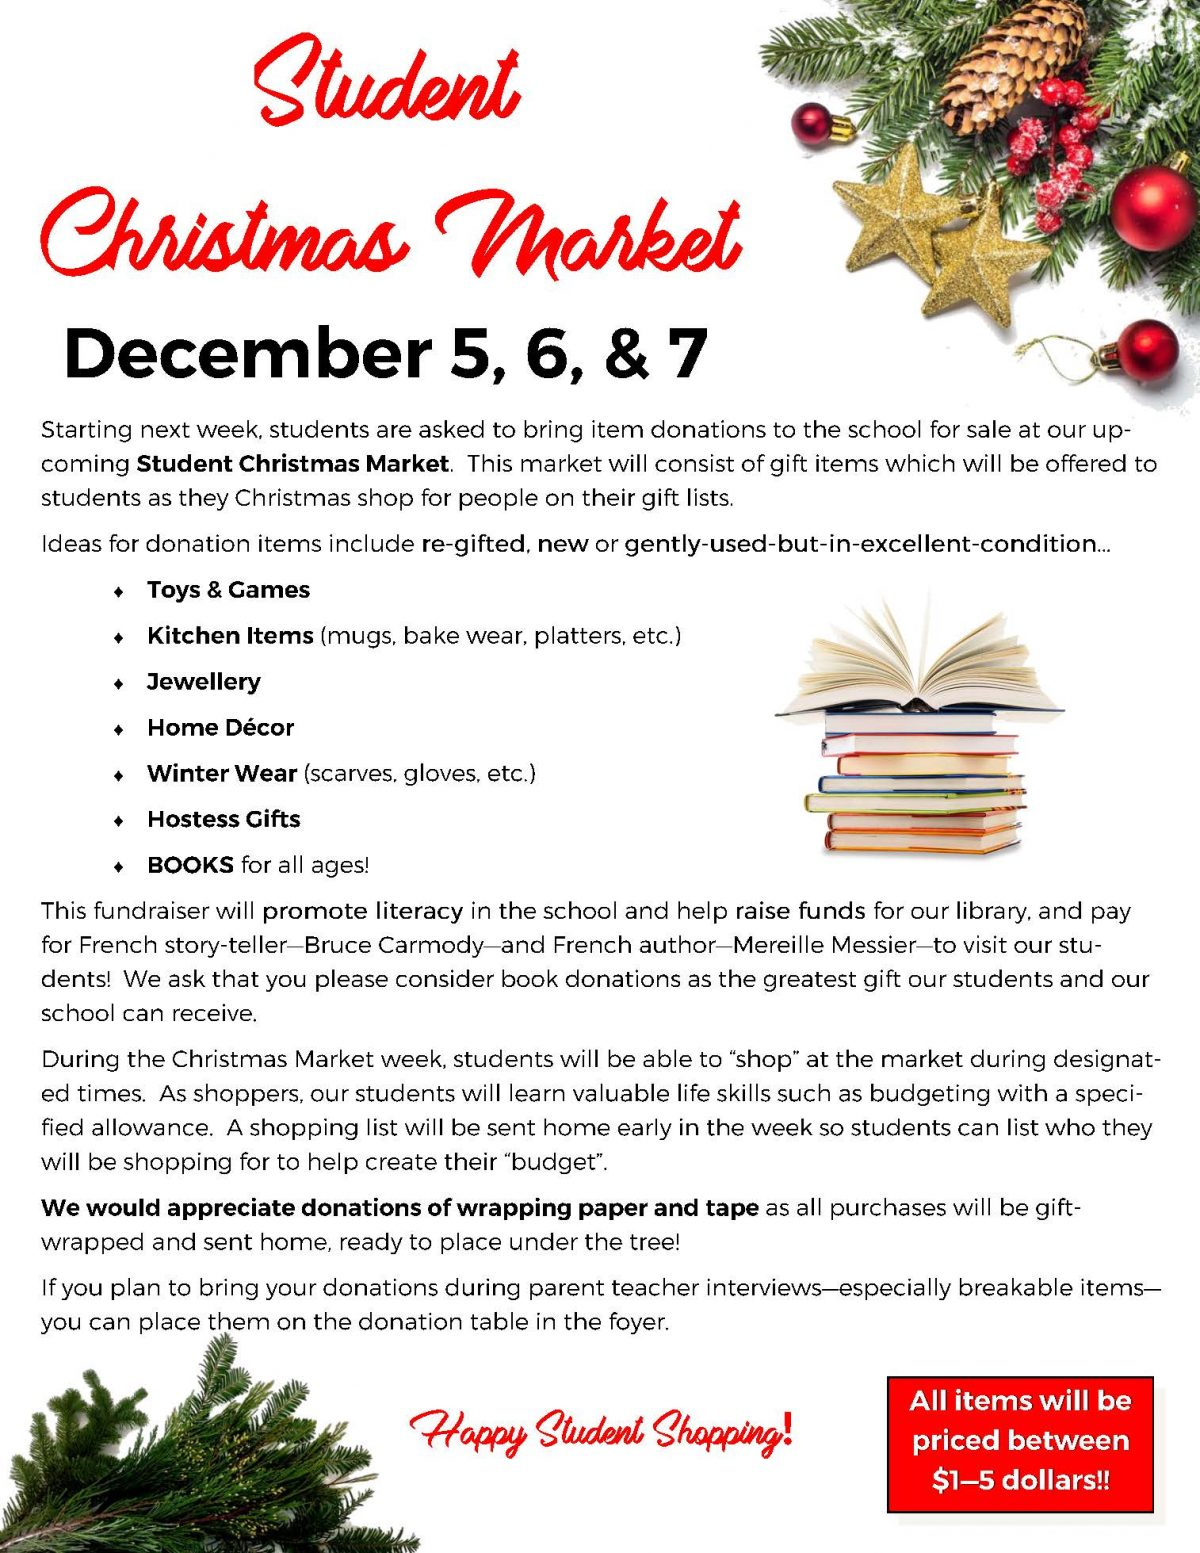 Student Christmas Market Dec 5-7